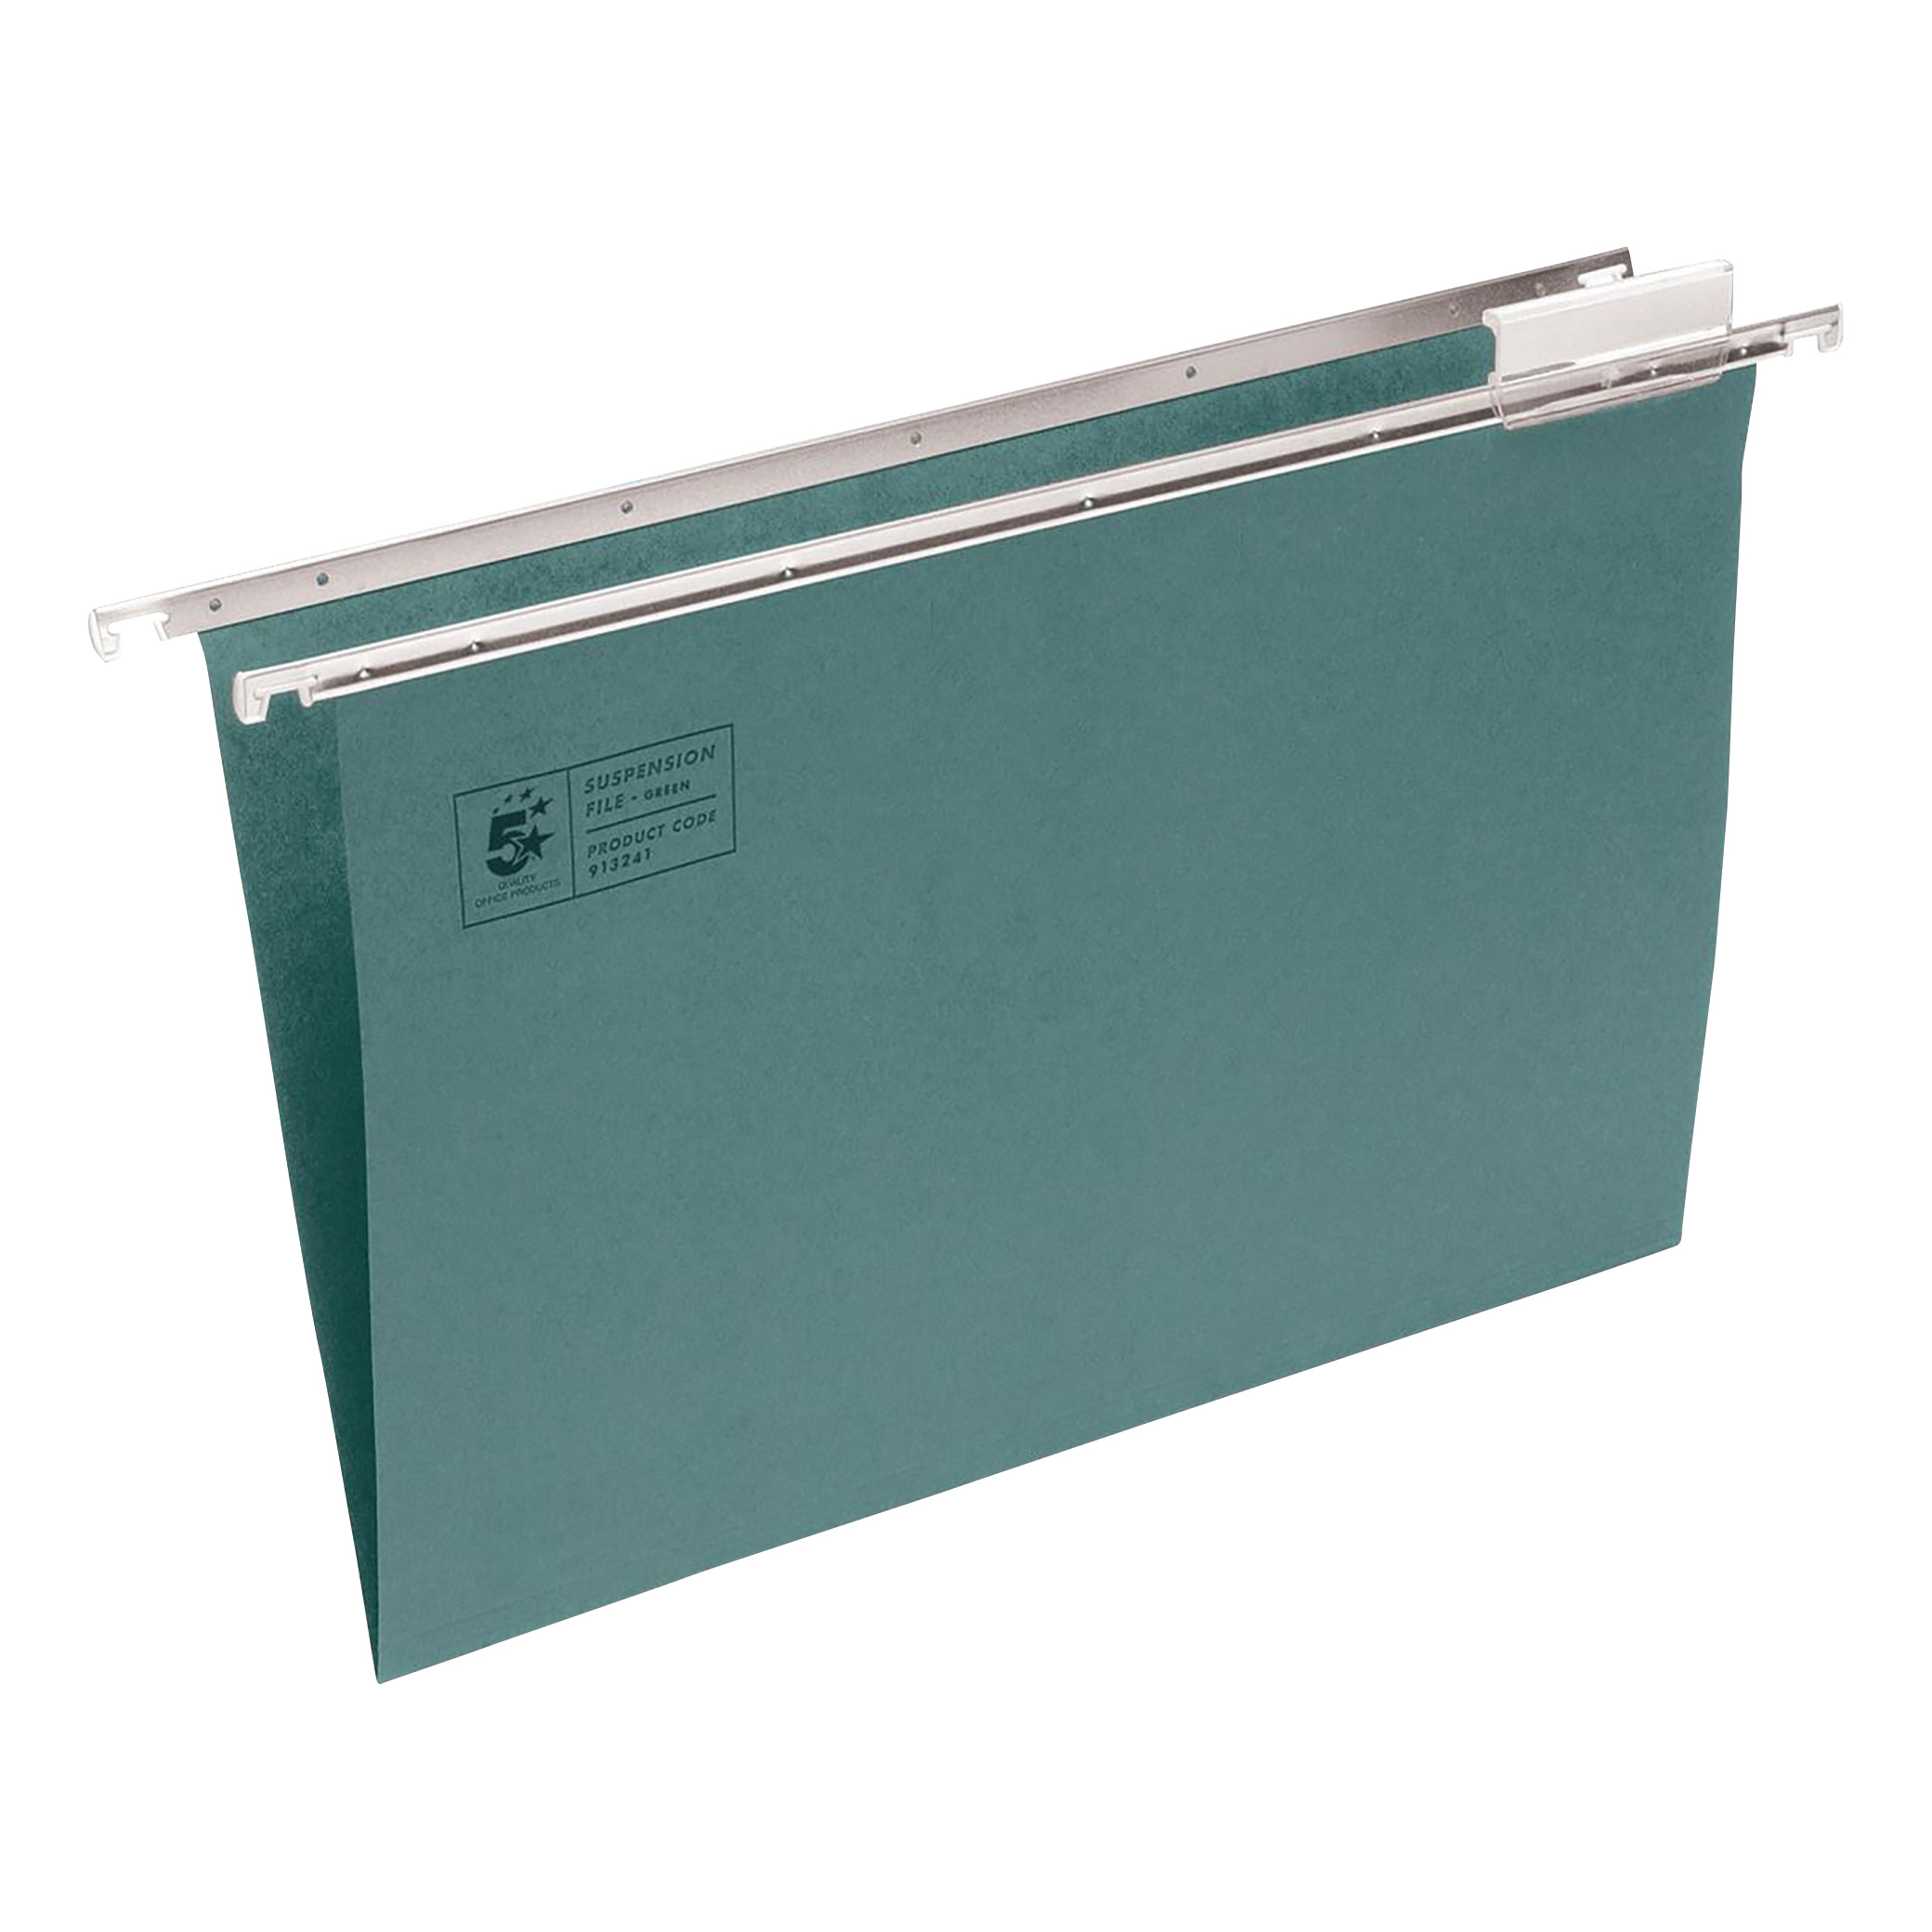 Suspension File 5 Star Office Suspension File with Tabs and Inserts Manilla 15mm V-base 180gsm A4 Green Pack 50